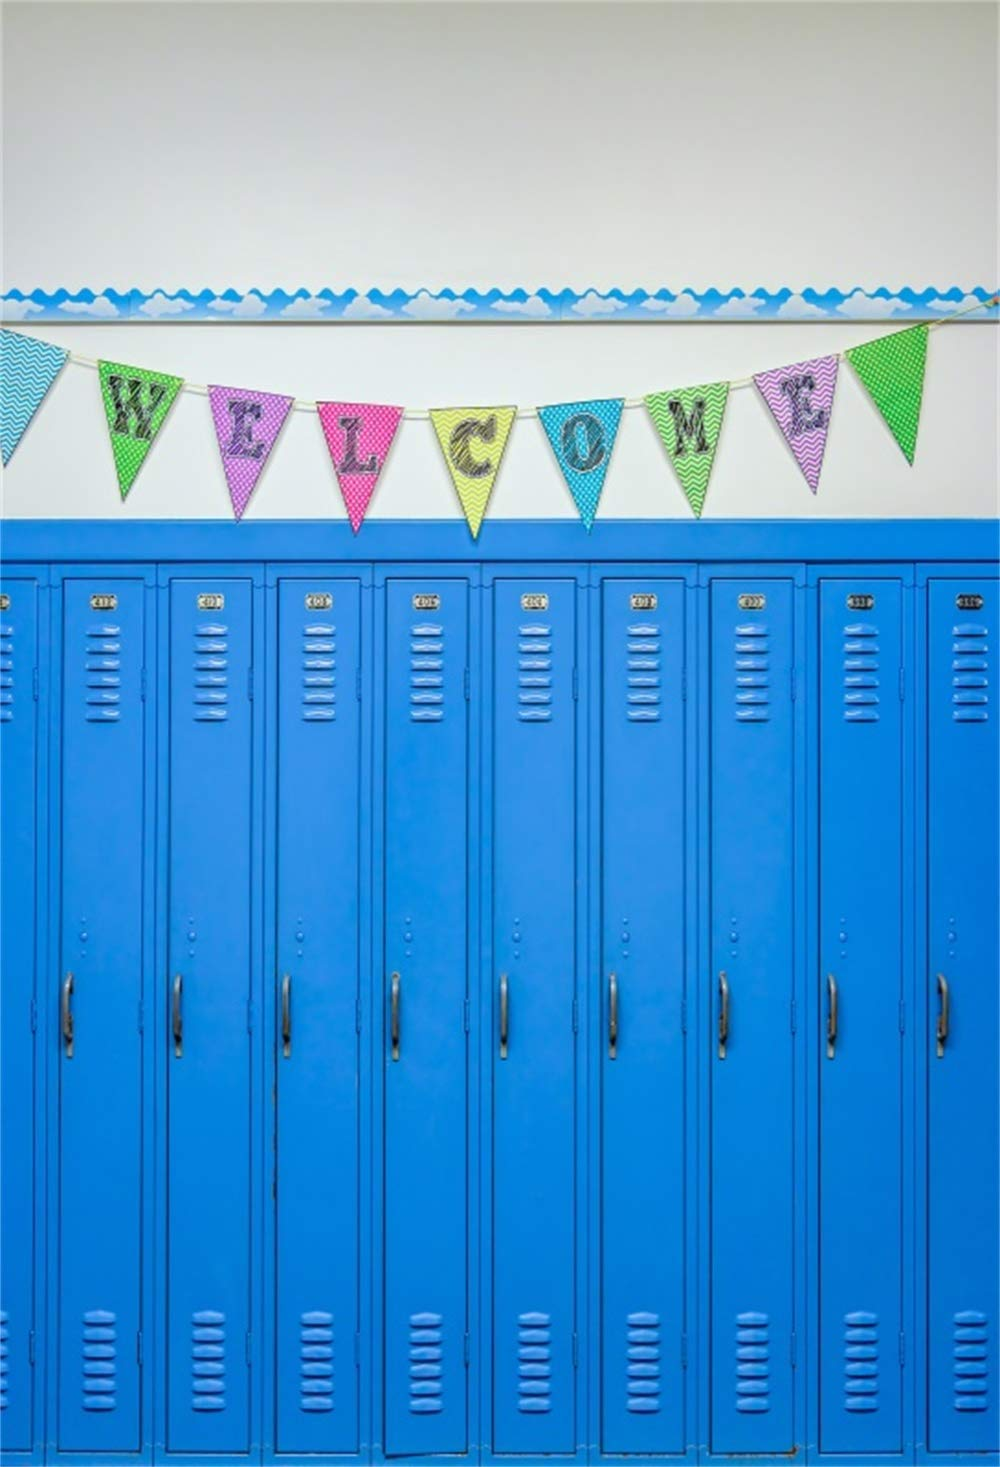 Leowefowa 8x10ft Back to School Backdrop Vinyl Colorful Welcome Buntings Blue Padlocked Lockers Photography Background Senior High School Students New Semester Shoot First Day of School Banner